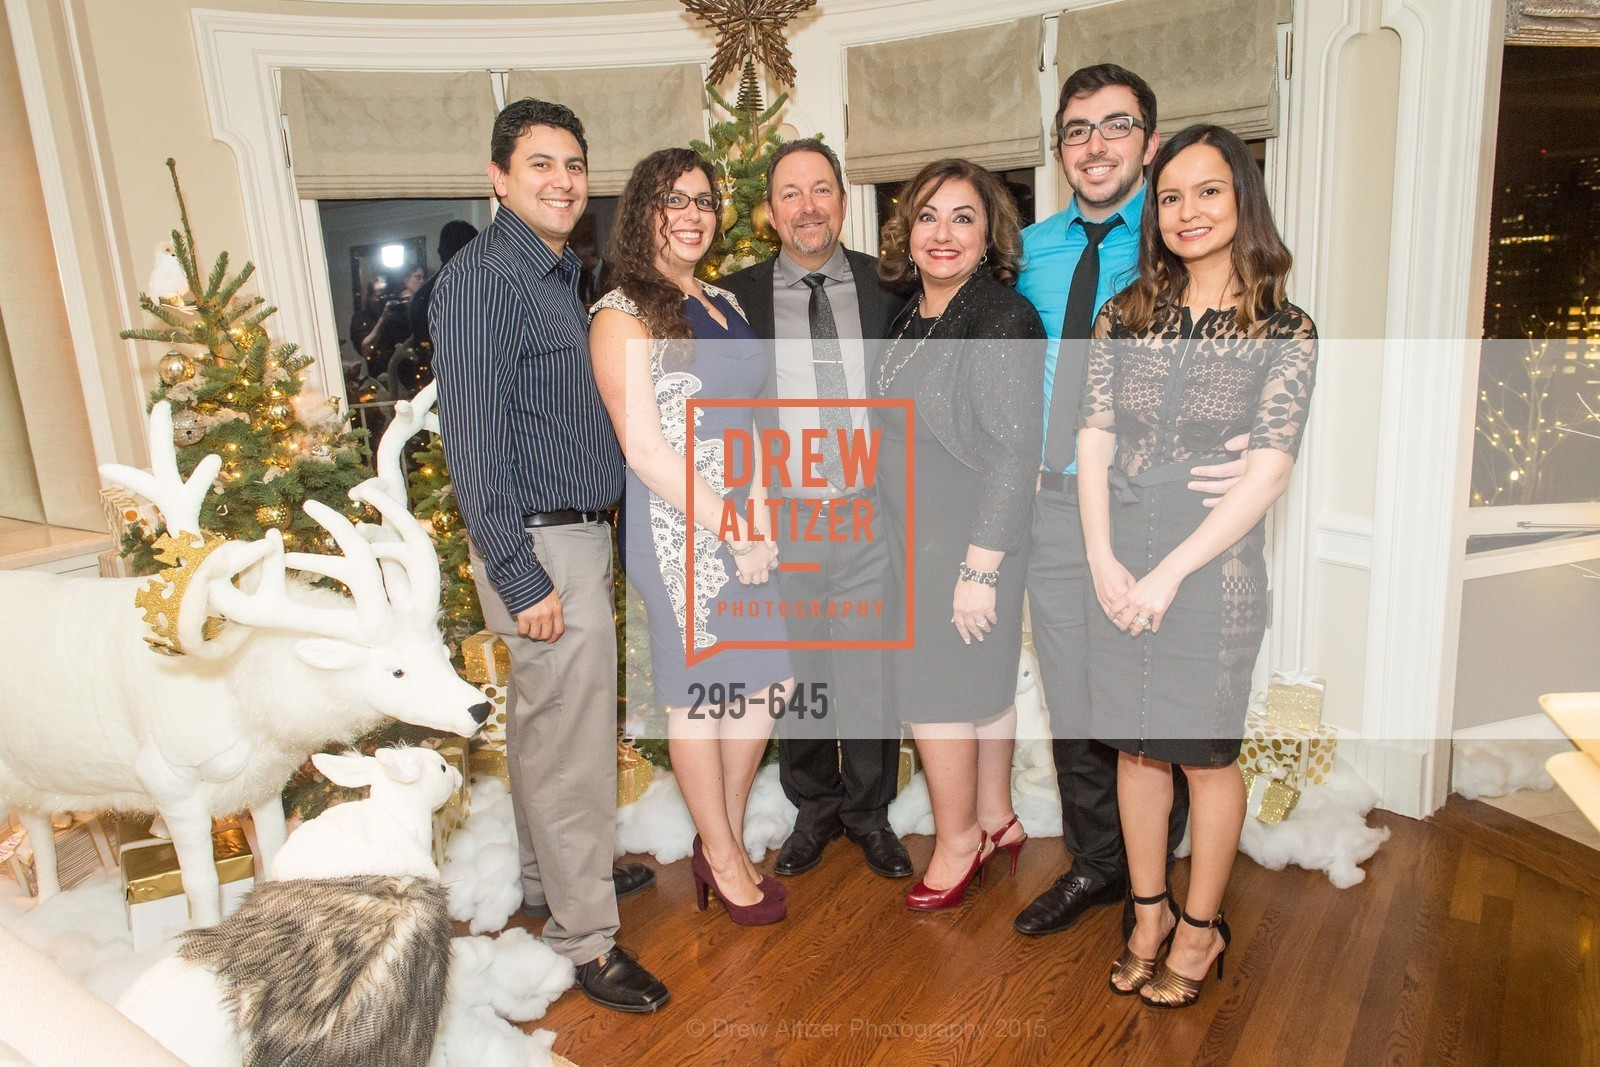 Danny Bauer, Shanna Atherton, Donny Atherton, Susan Atherton, Tracy Atherton, Evan Atherton, Sargam Atherton, Atherton Holiday Party, Private Residence, December 12th, 2015,Drew Altizer, Drew Altizer Photography, full-service agency, private events, San Francisco photographer, photographer california